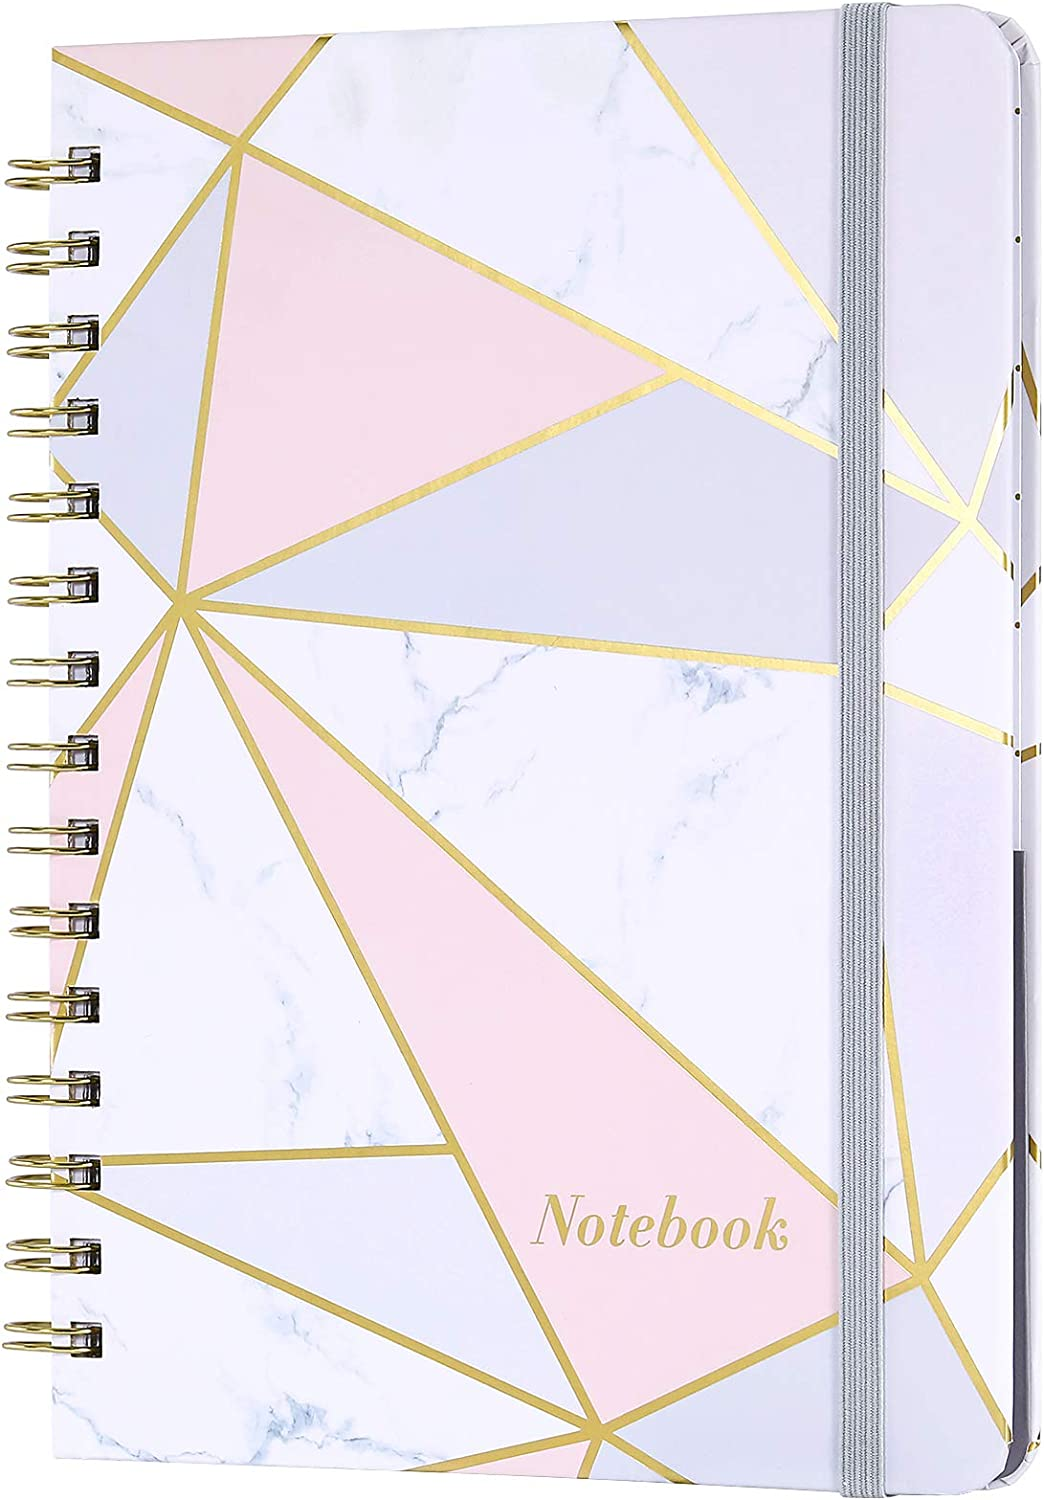 Ruled Journal/Notebook- Lined Journal with Hardcover, 6.3